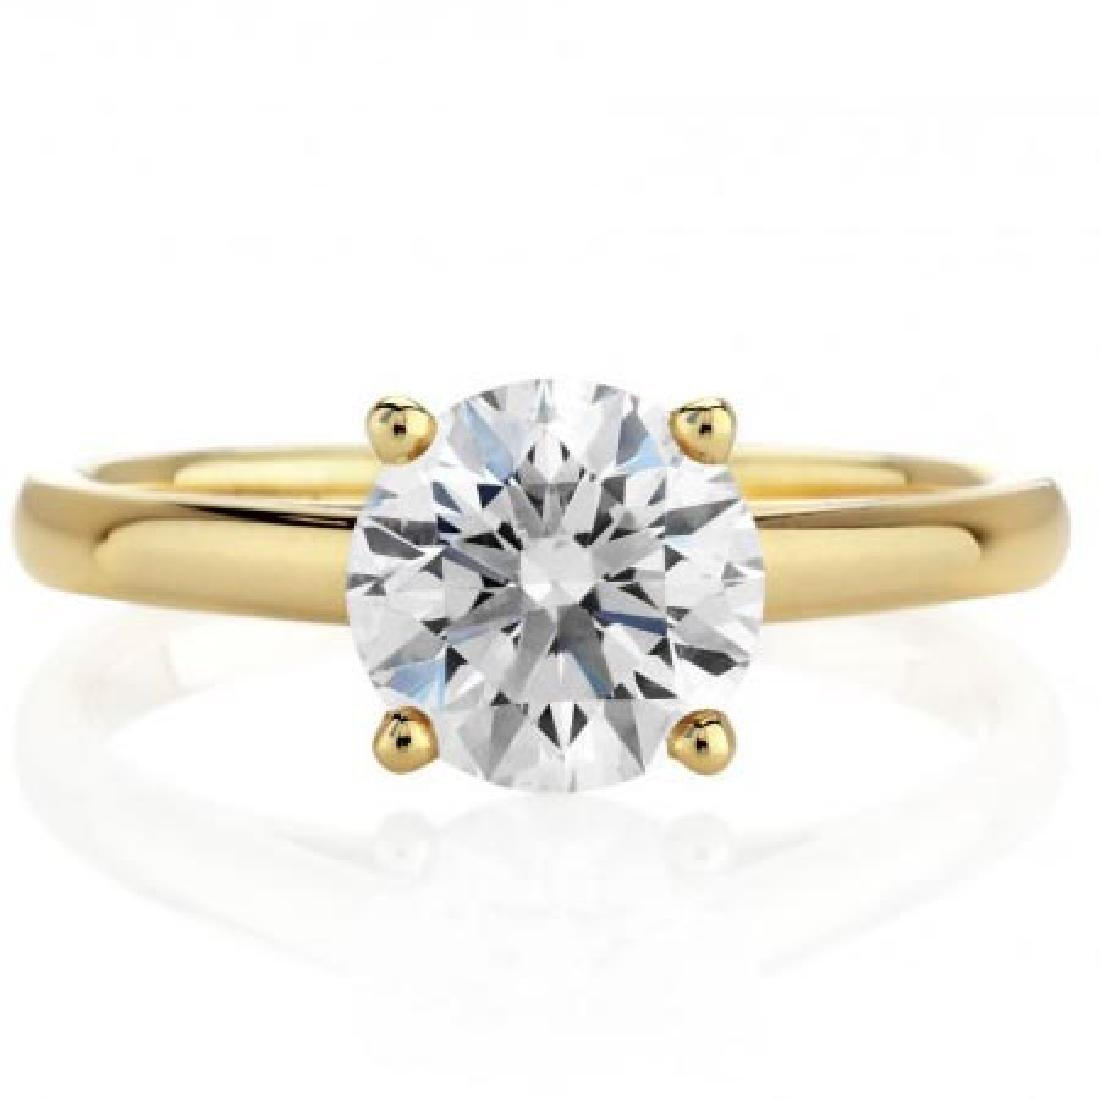 CERTIFIED 1.01 CTW ROUND H/VS1 SOLITAIRE RING IN 14K YE